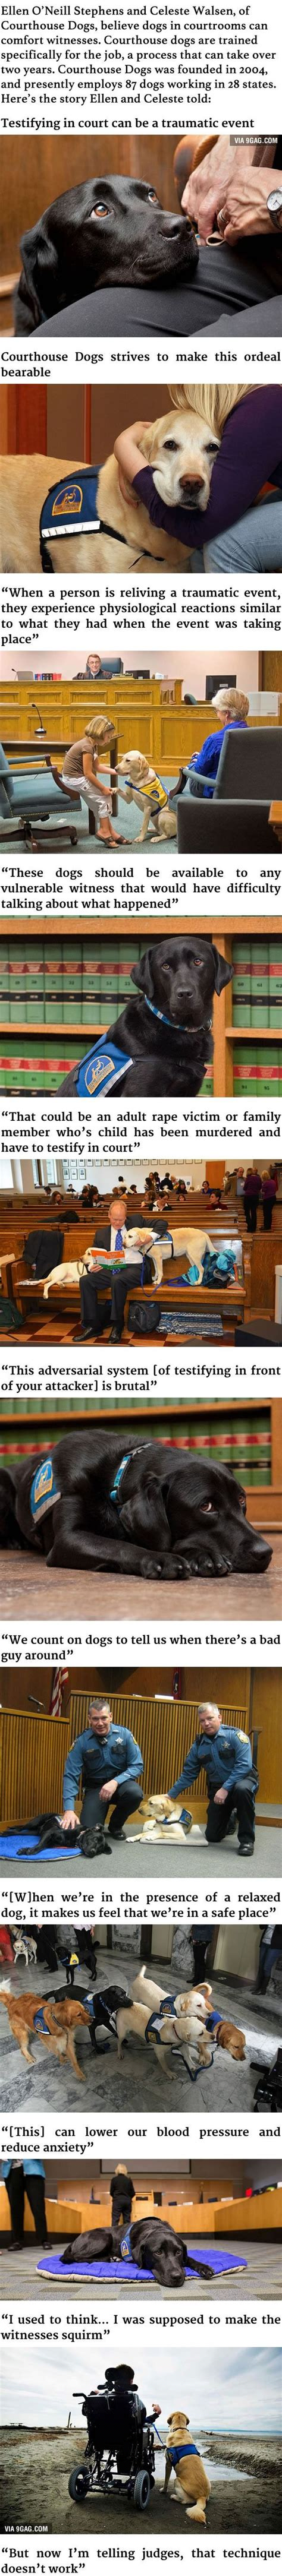 comfort animal certification these courthouse dogs are trained to comfort witnesses in